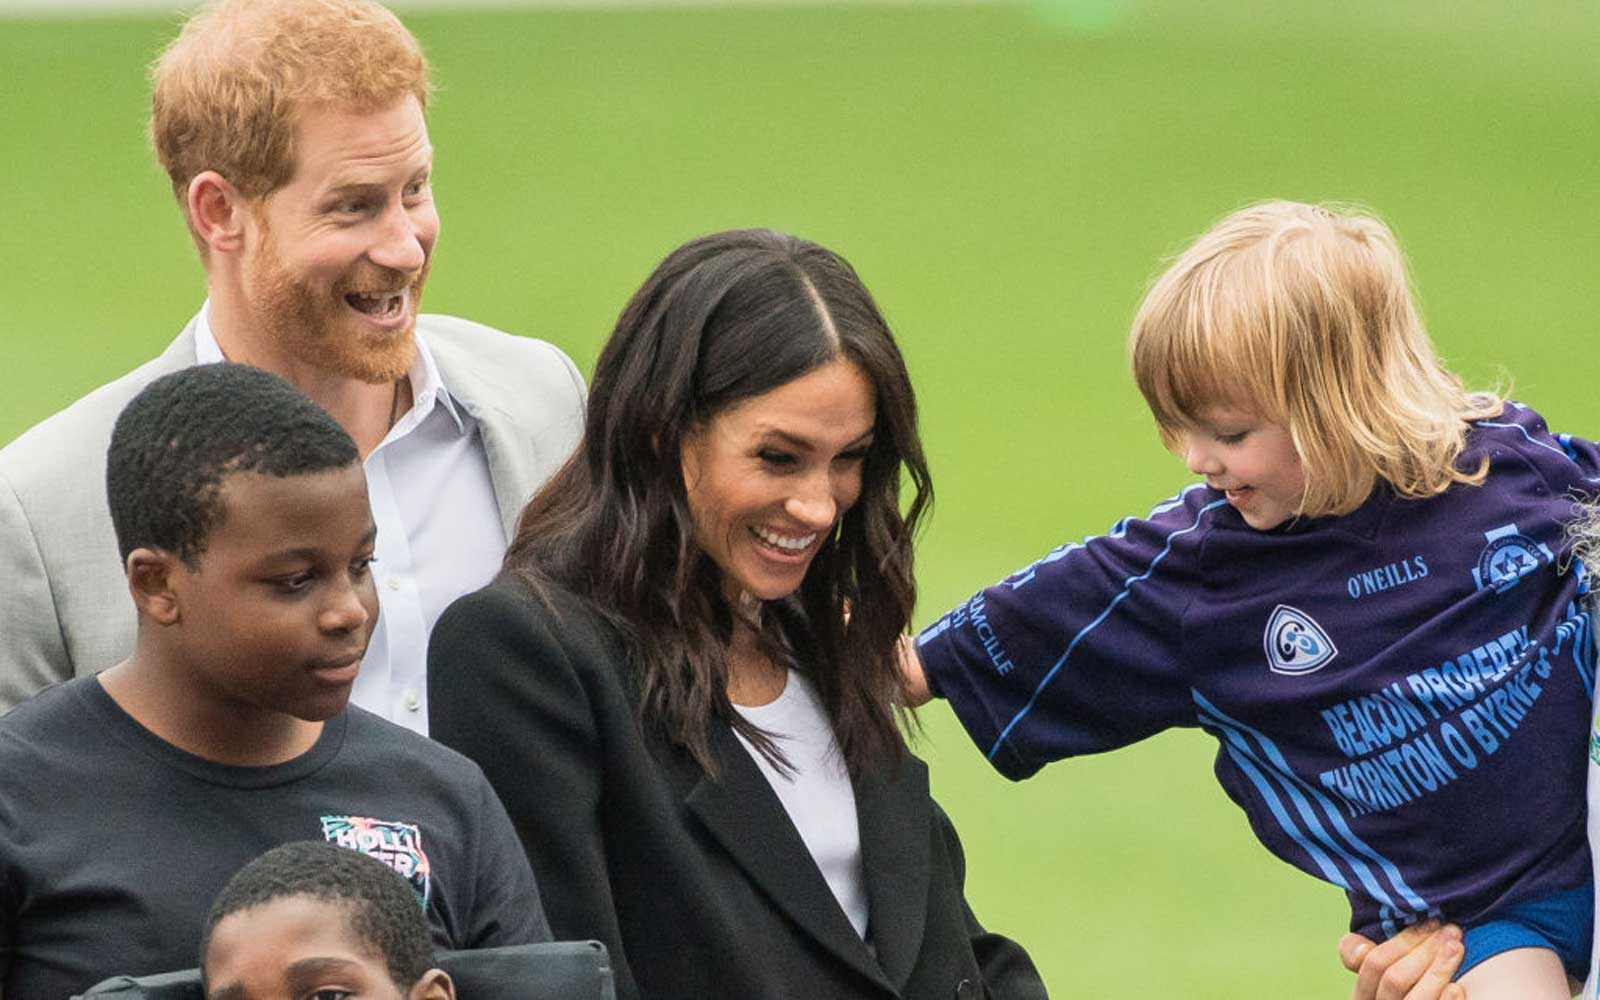 This Toddler Couldn't Get Enough of Meghan Markle and Prince Harry Secretly Loved It